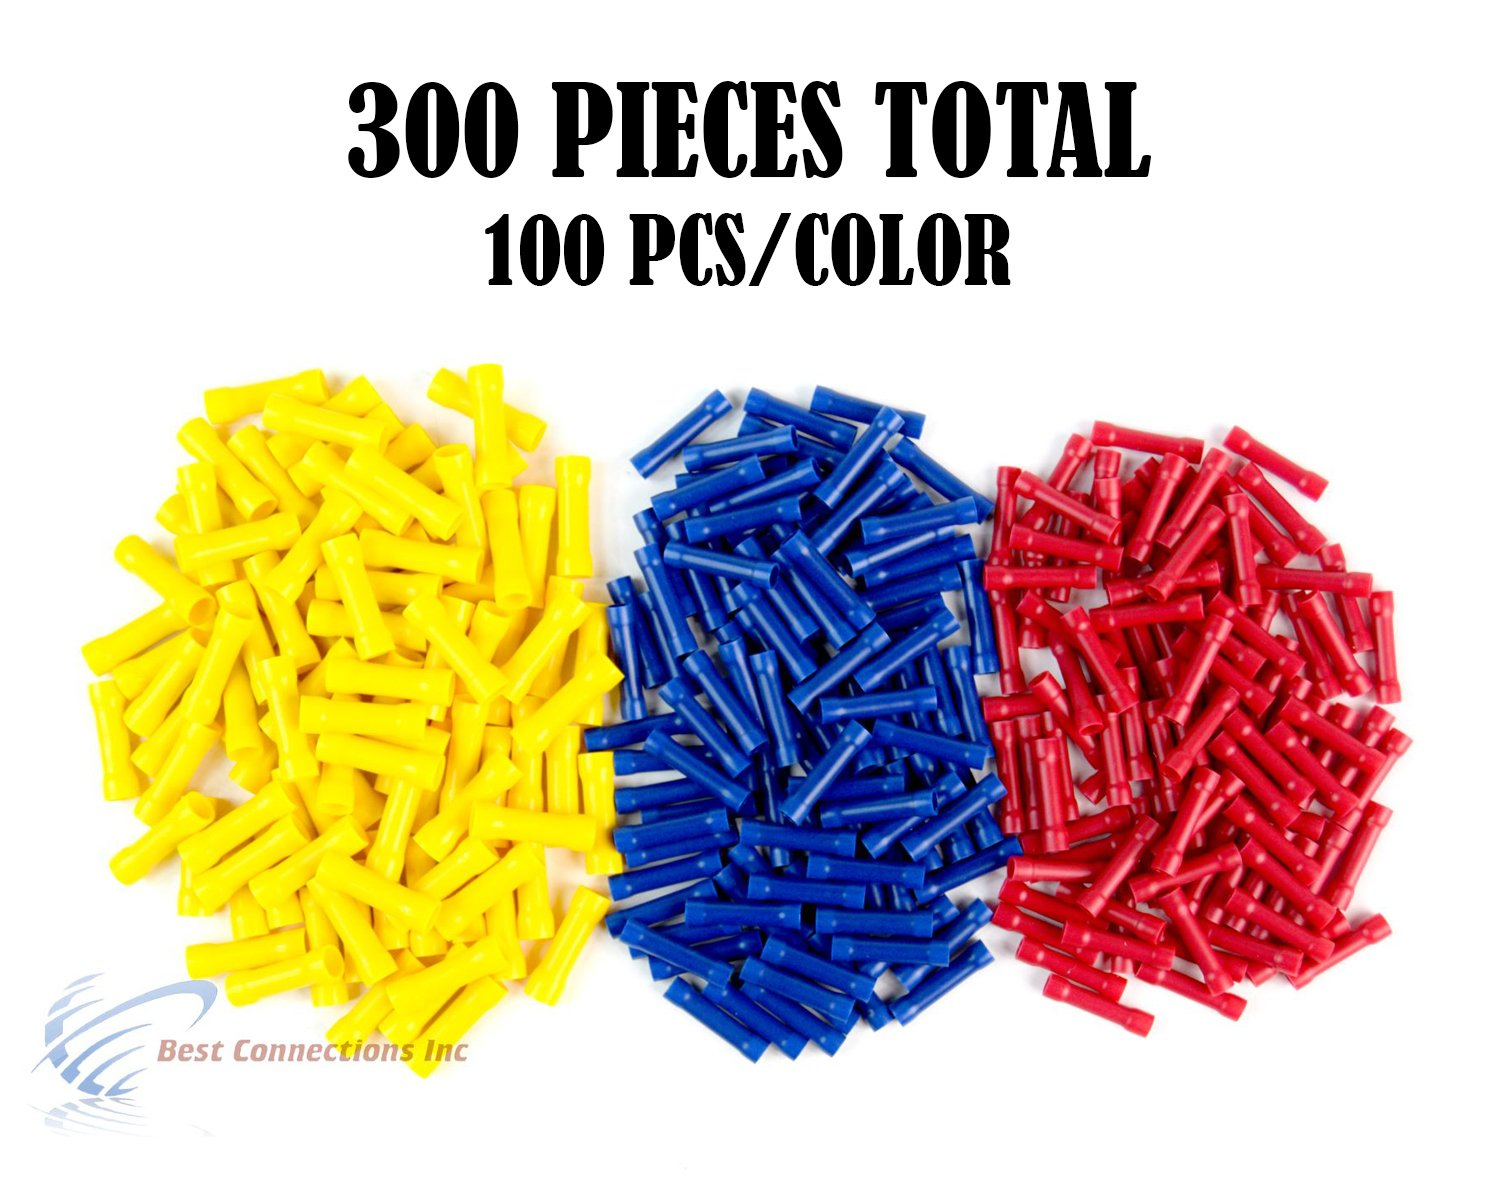 300 PCS Red Blue Yellow Vinyl Butt Connector 22-10 Gauge 12V Electrical Install